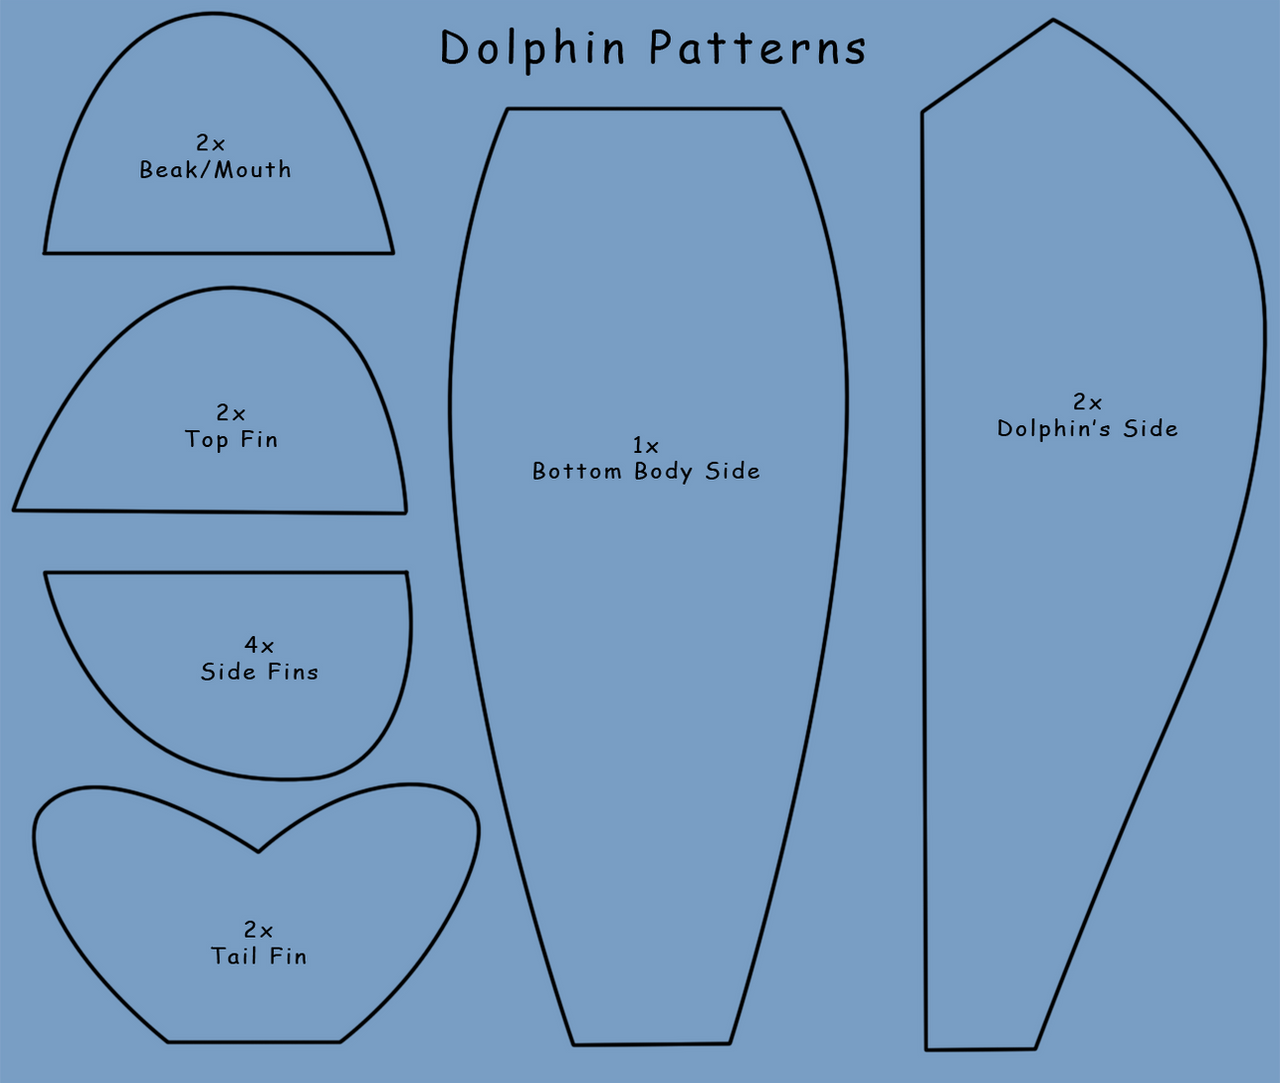 Dolphin Patterns By Saiyamewome On Deviantart